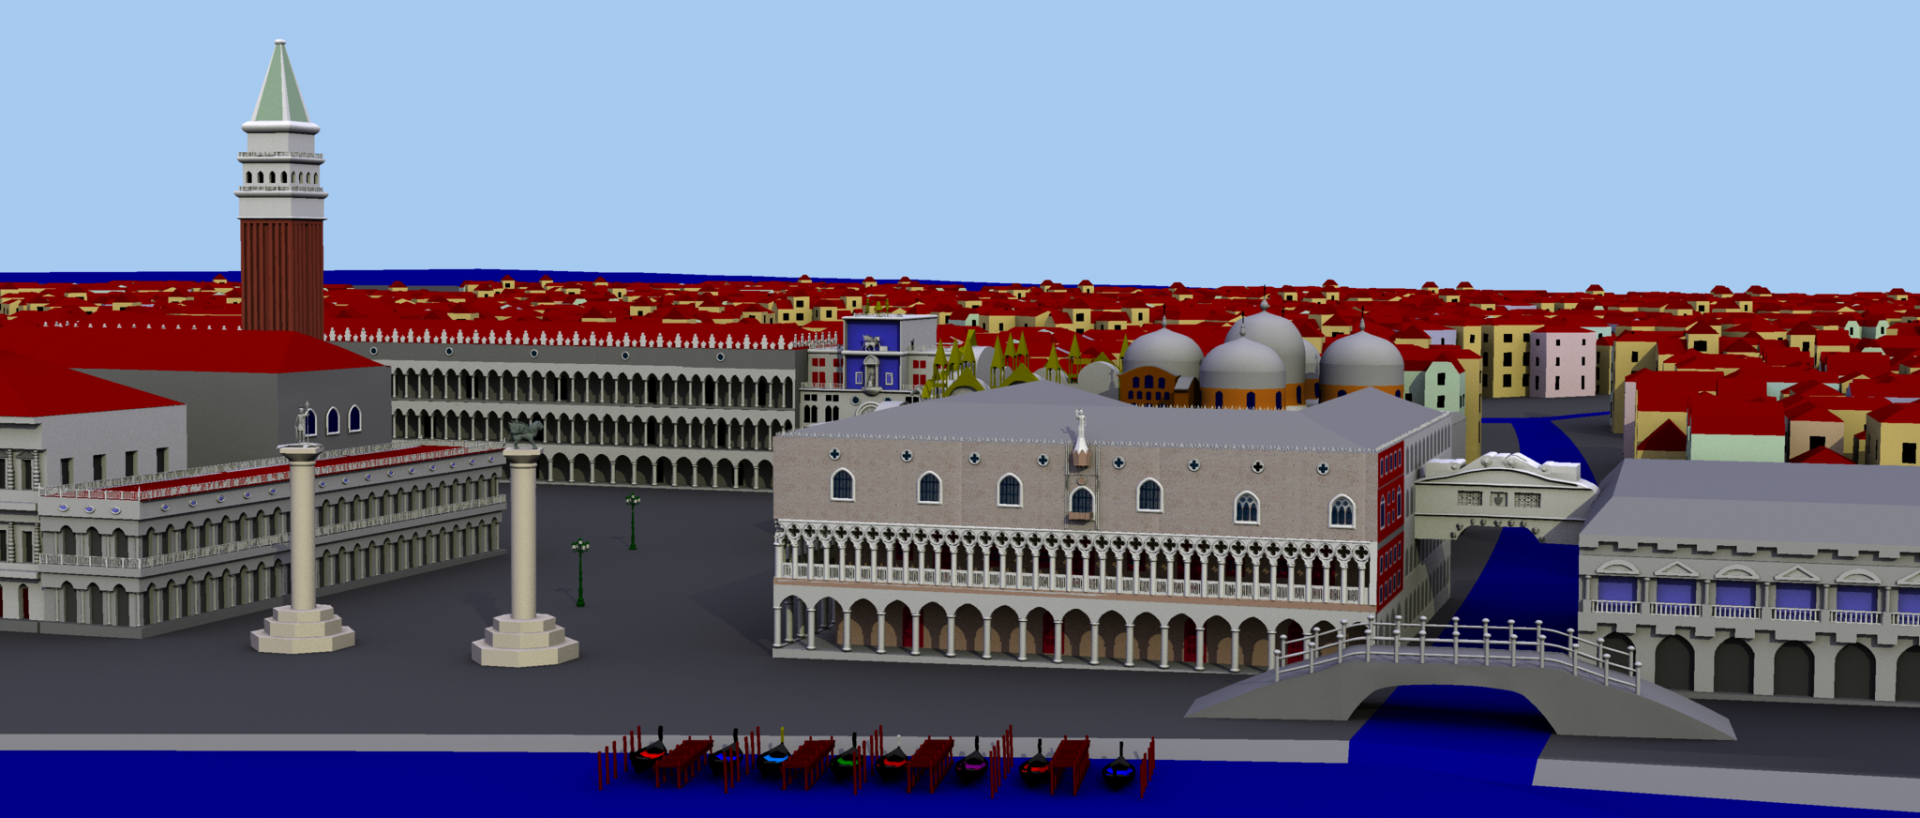 Venice in progress AOe sun0.png